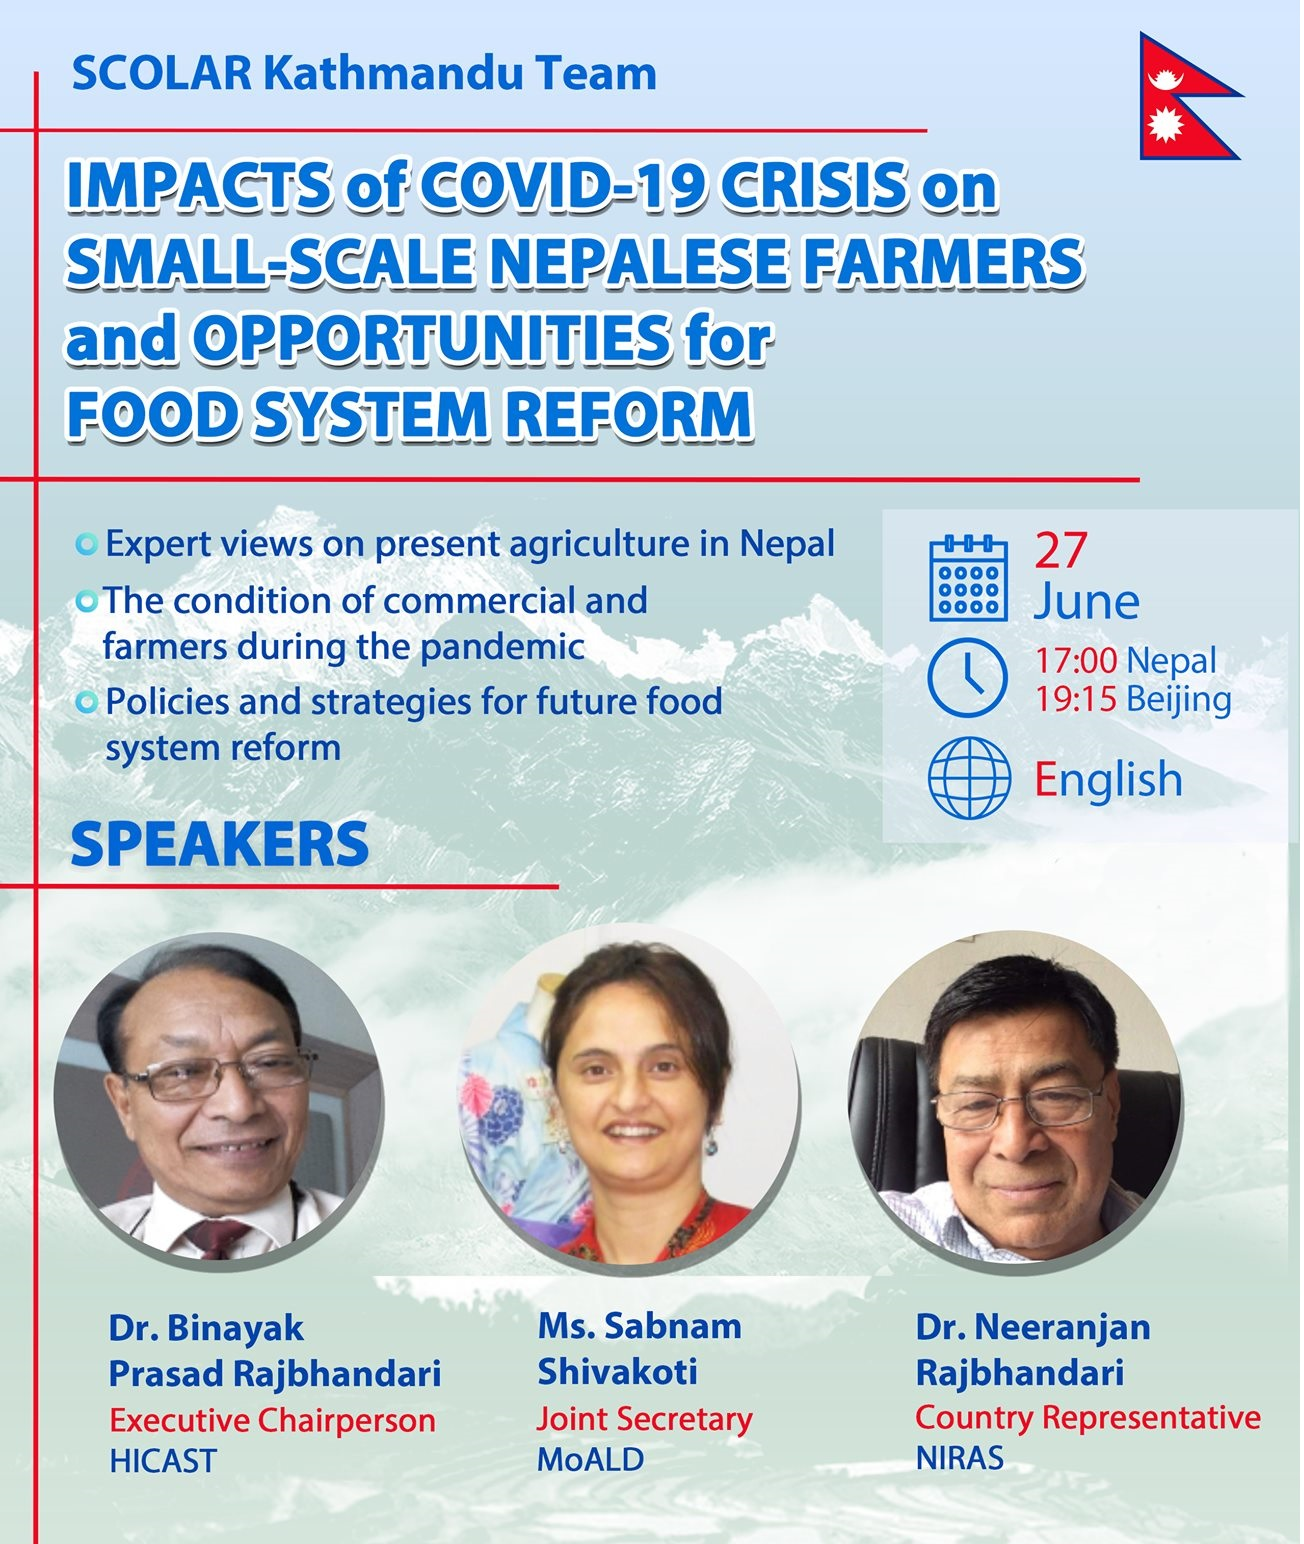 Impact of COVID crisis on Nepalese small-scale farmers and opportunities for food reform system